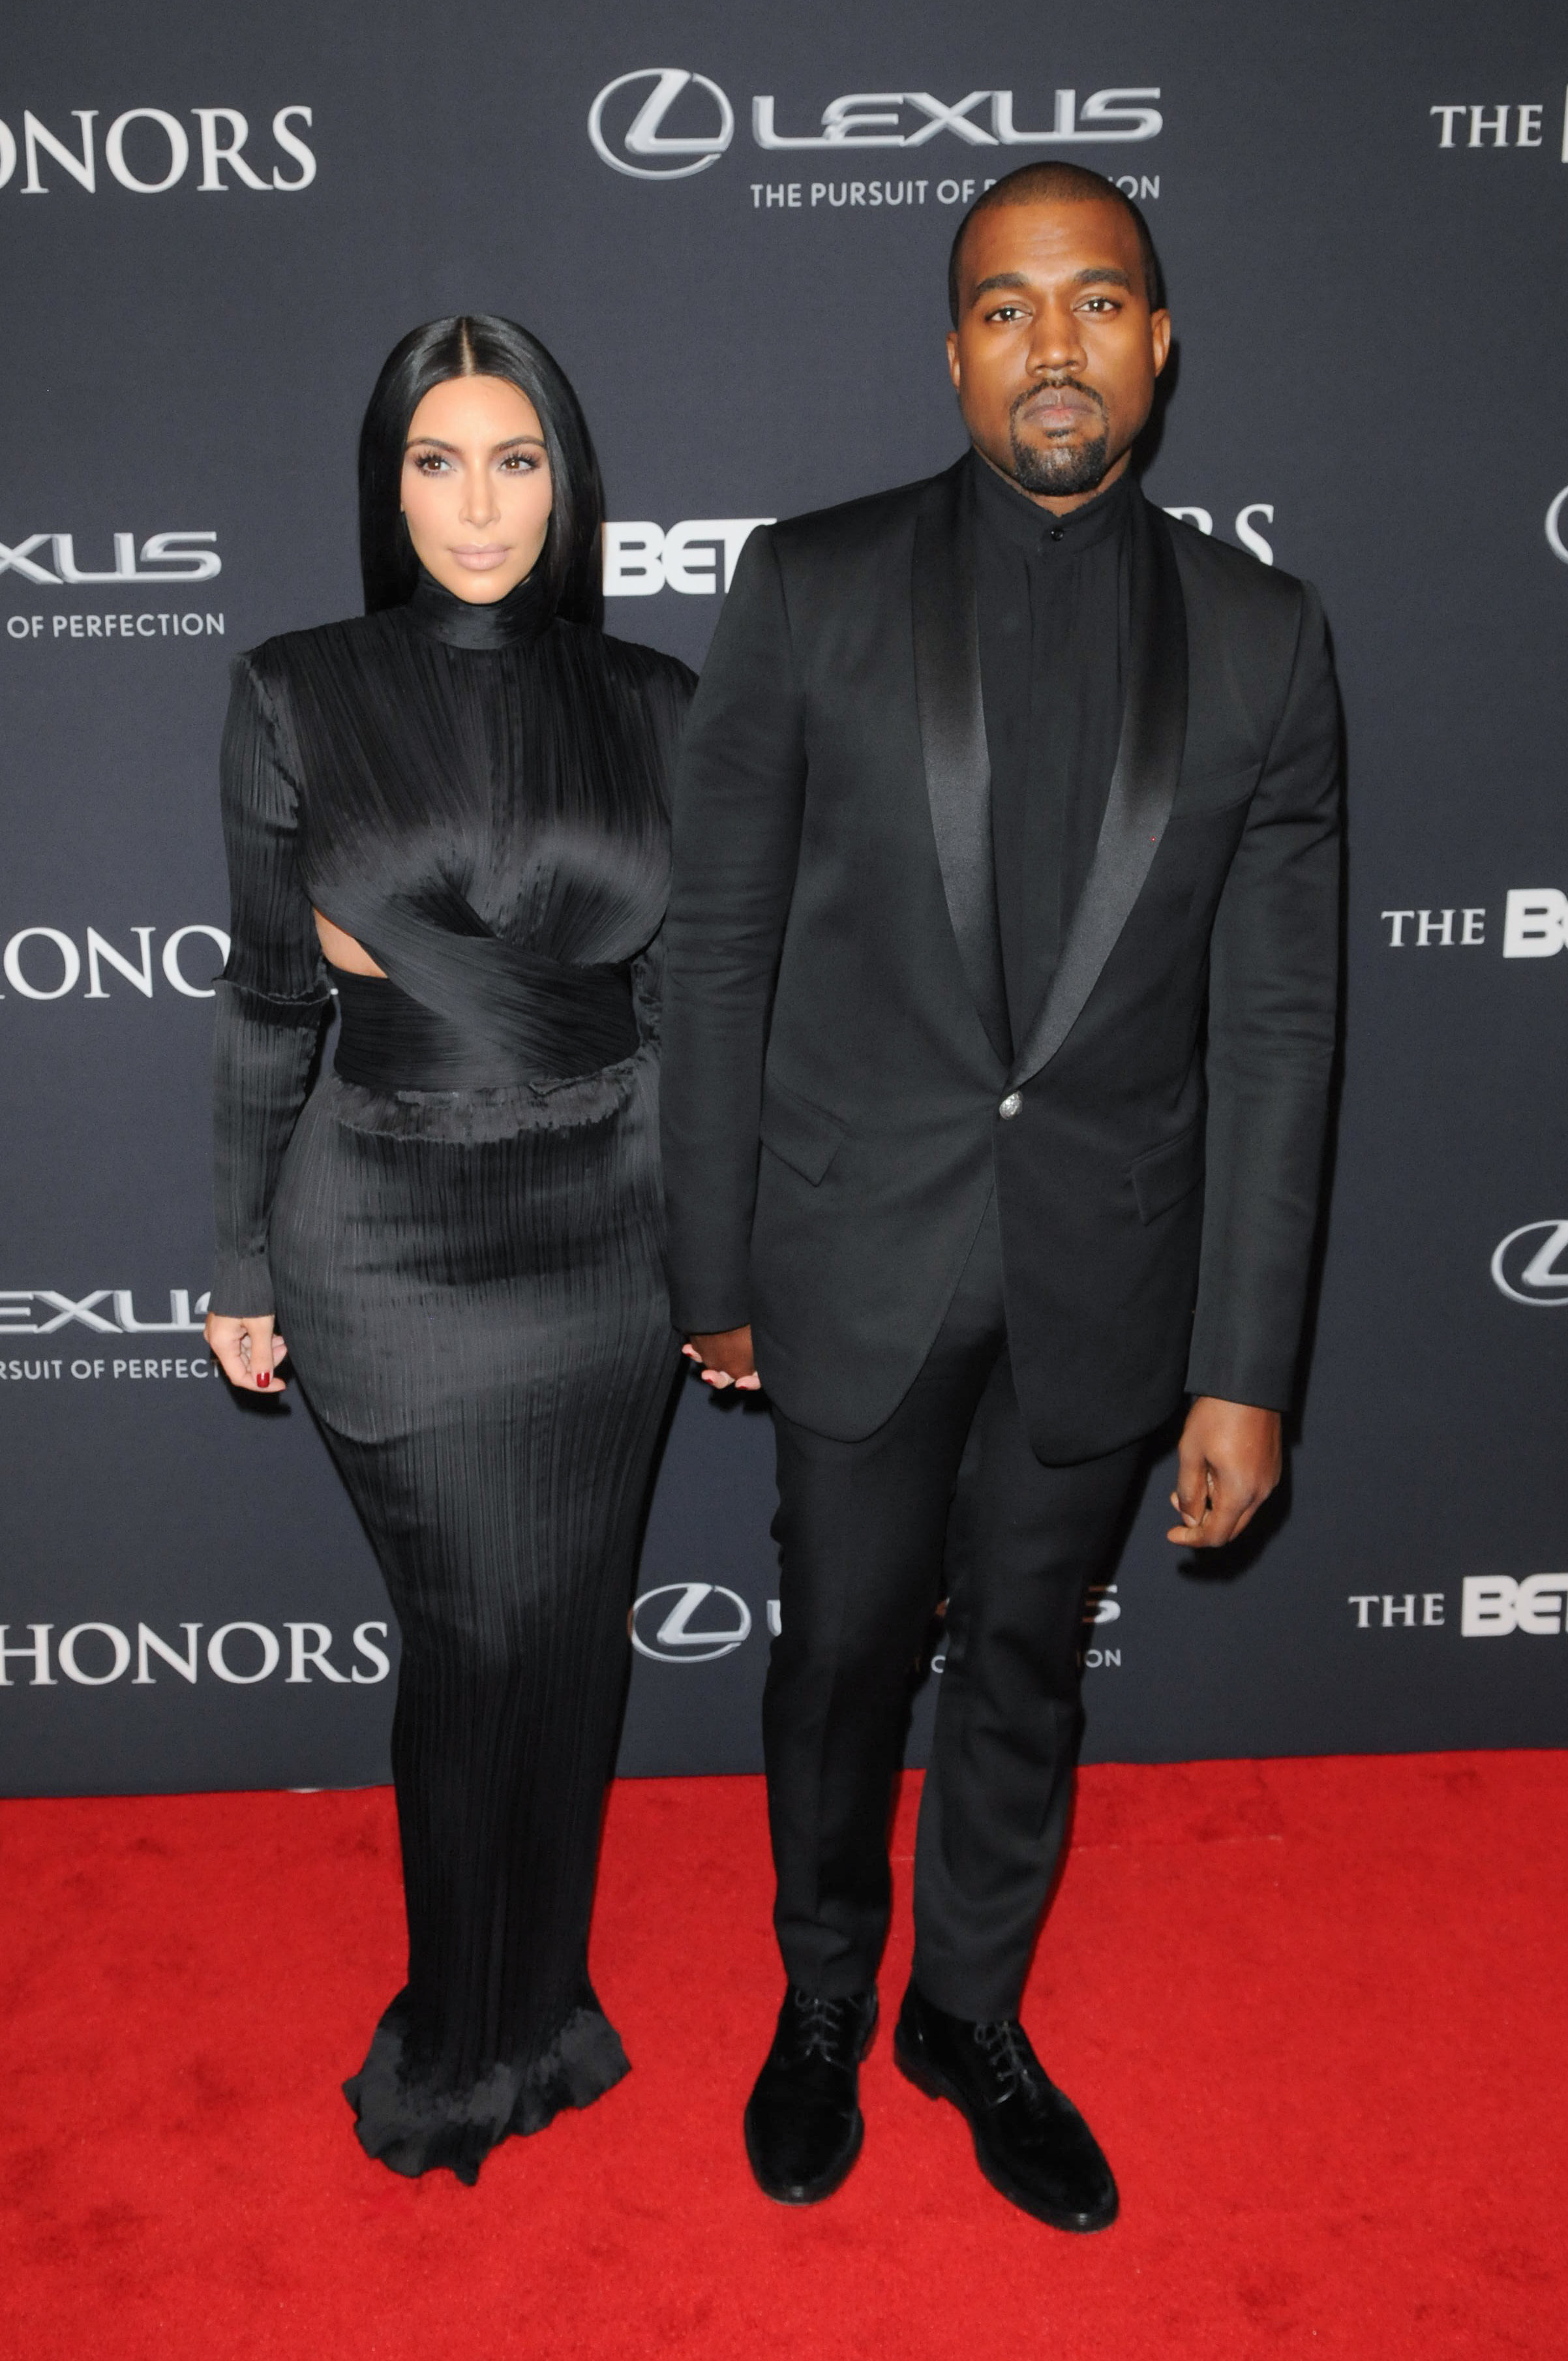 Kanye West admits humility, talks interracial marriage at BET Honors